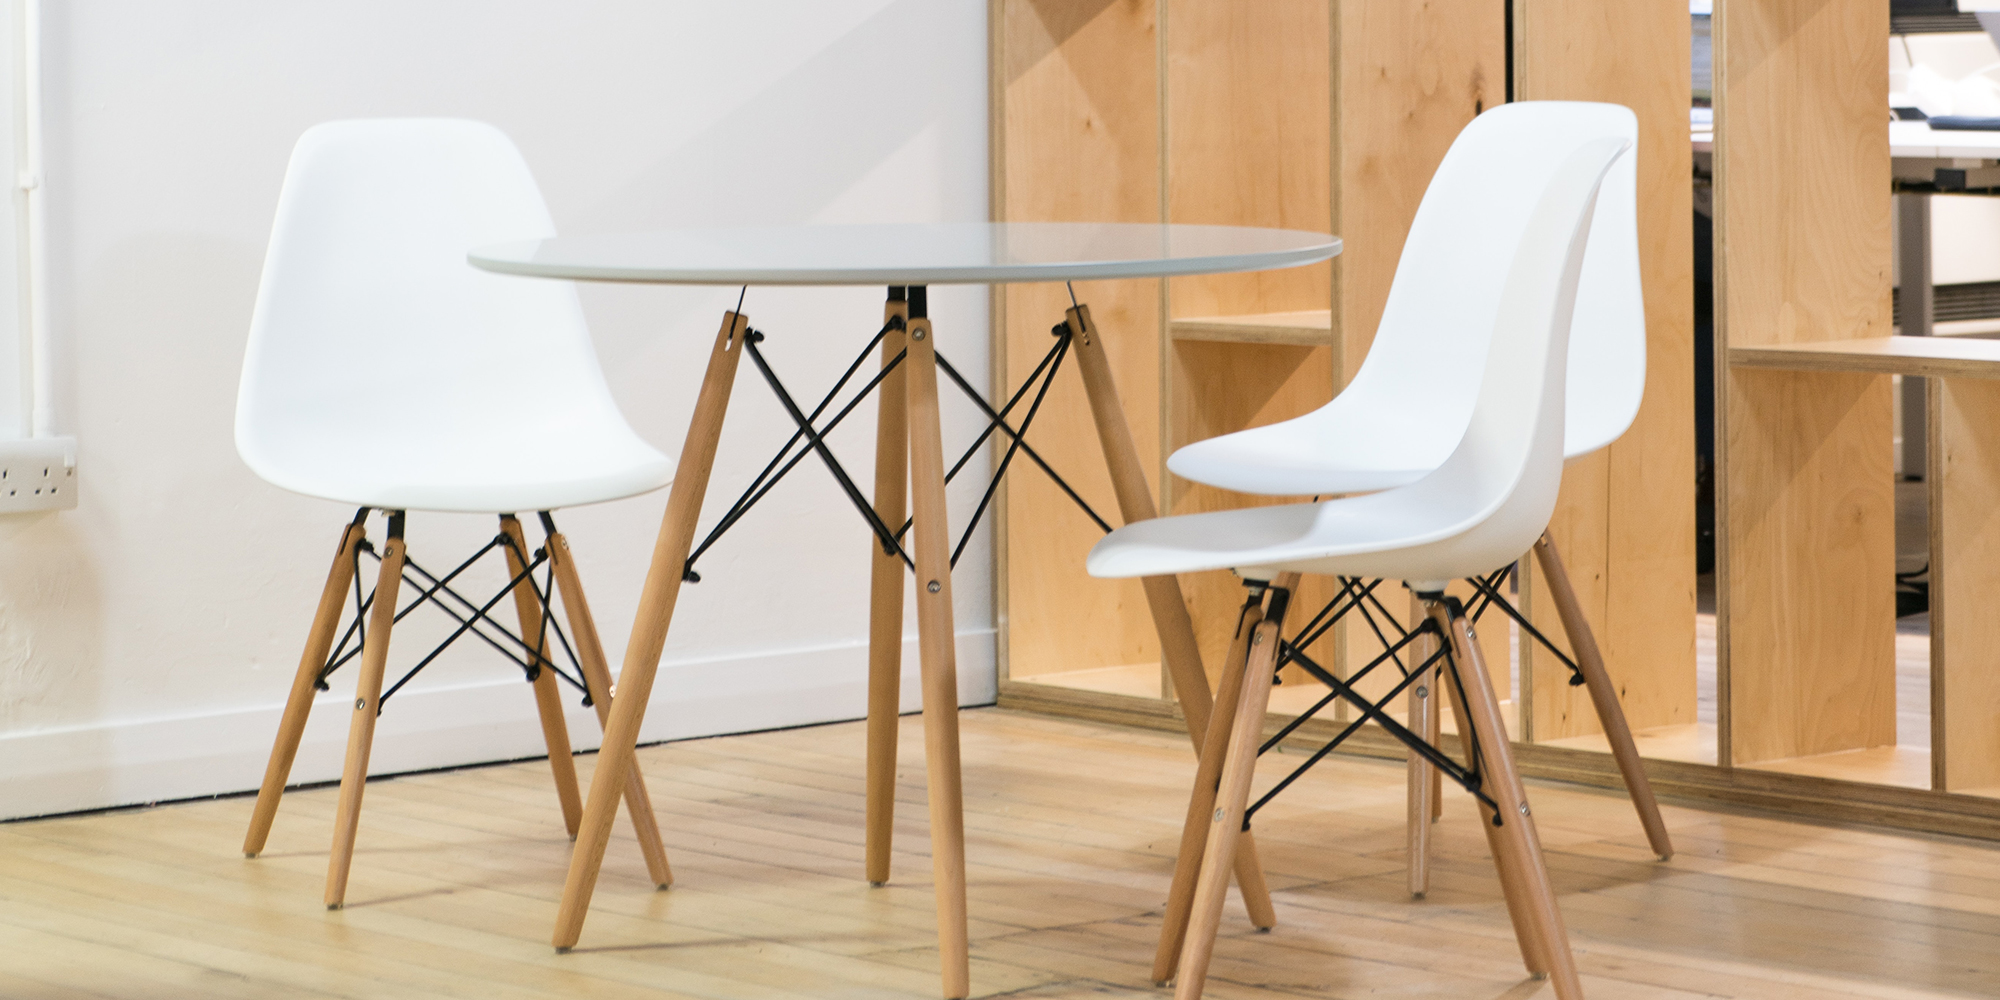 Eames DSW Inspired Chairs and Table